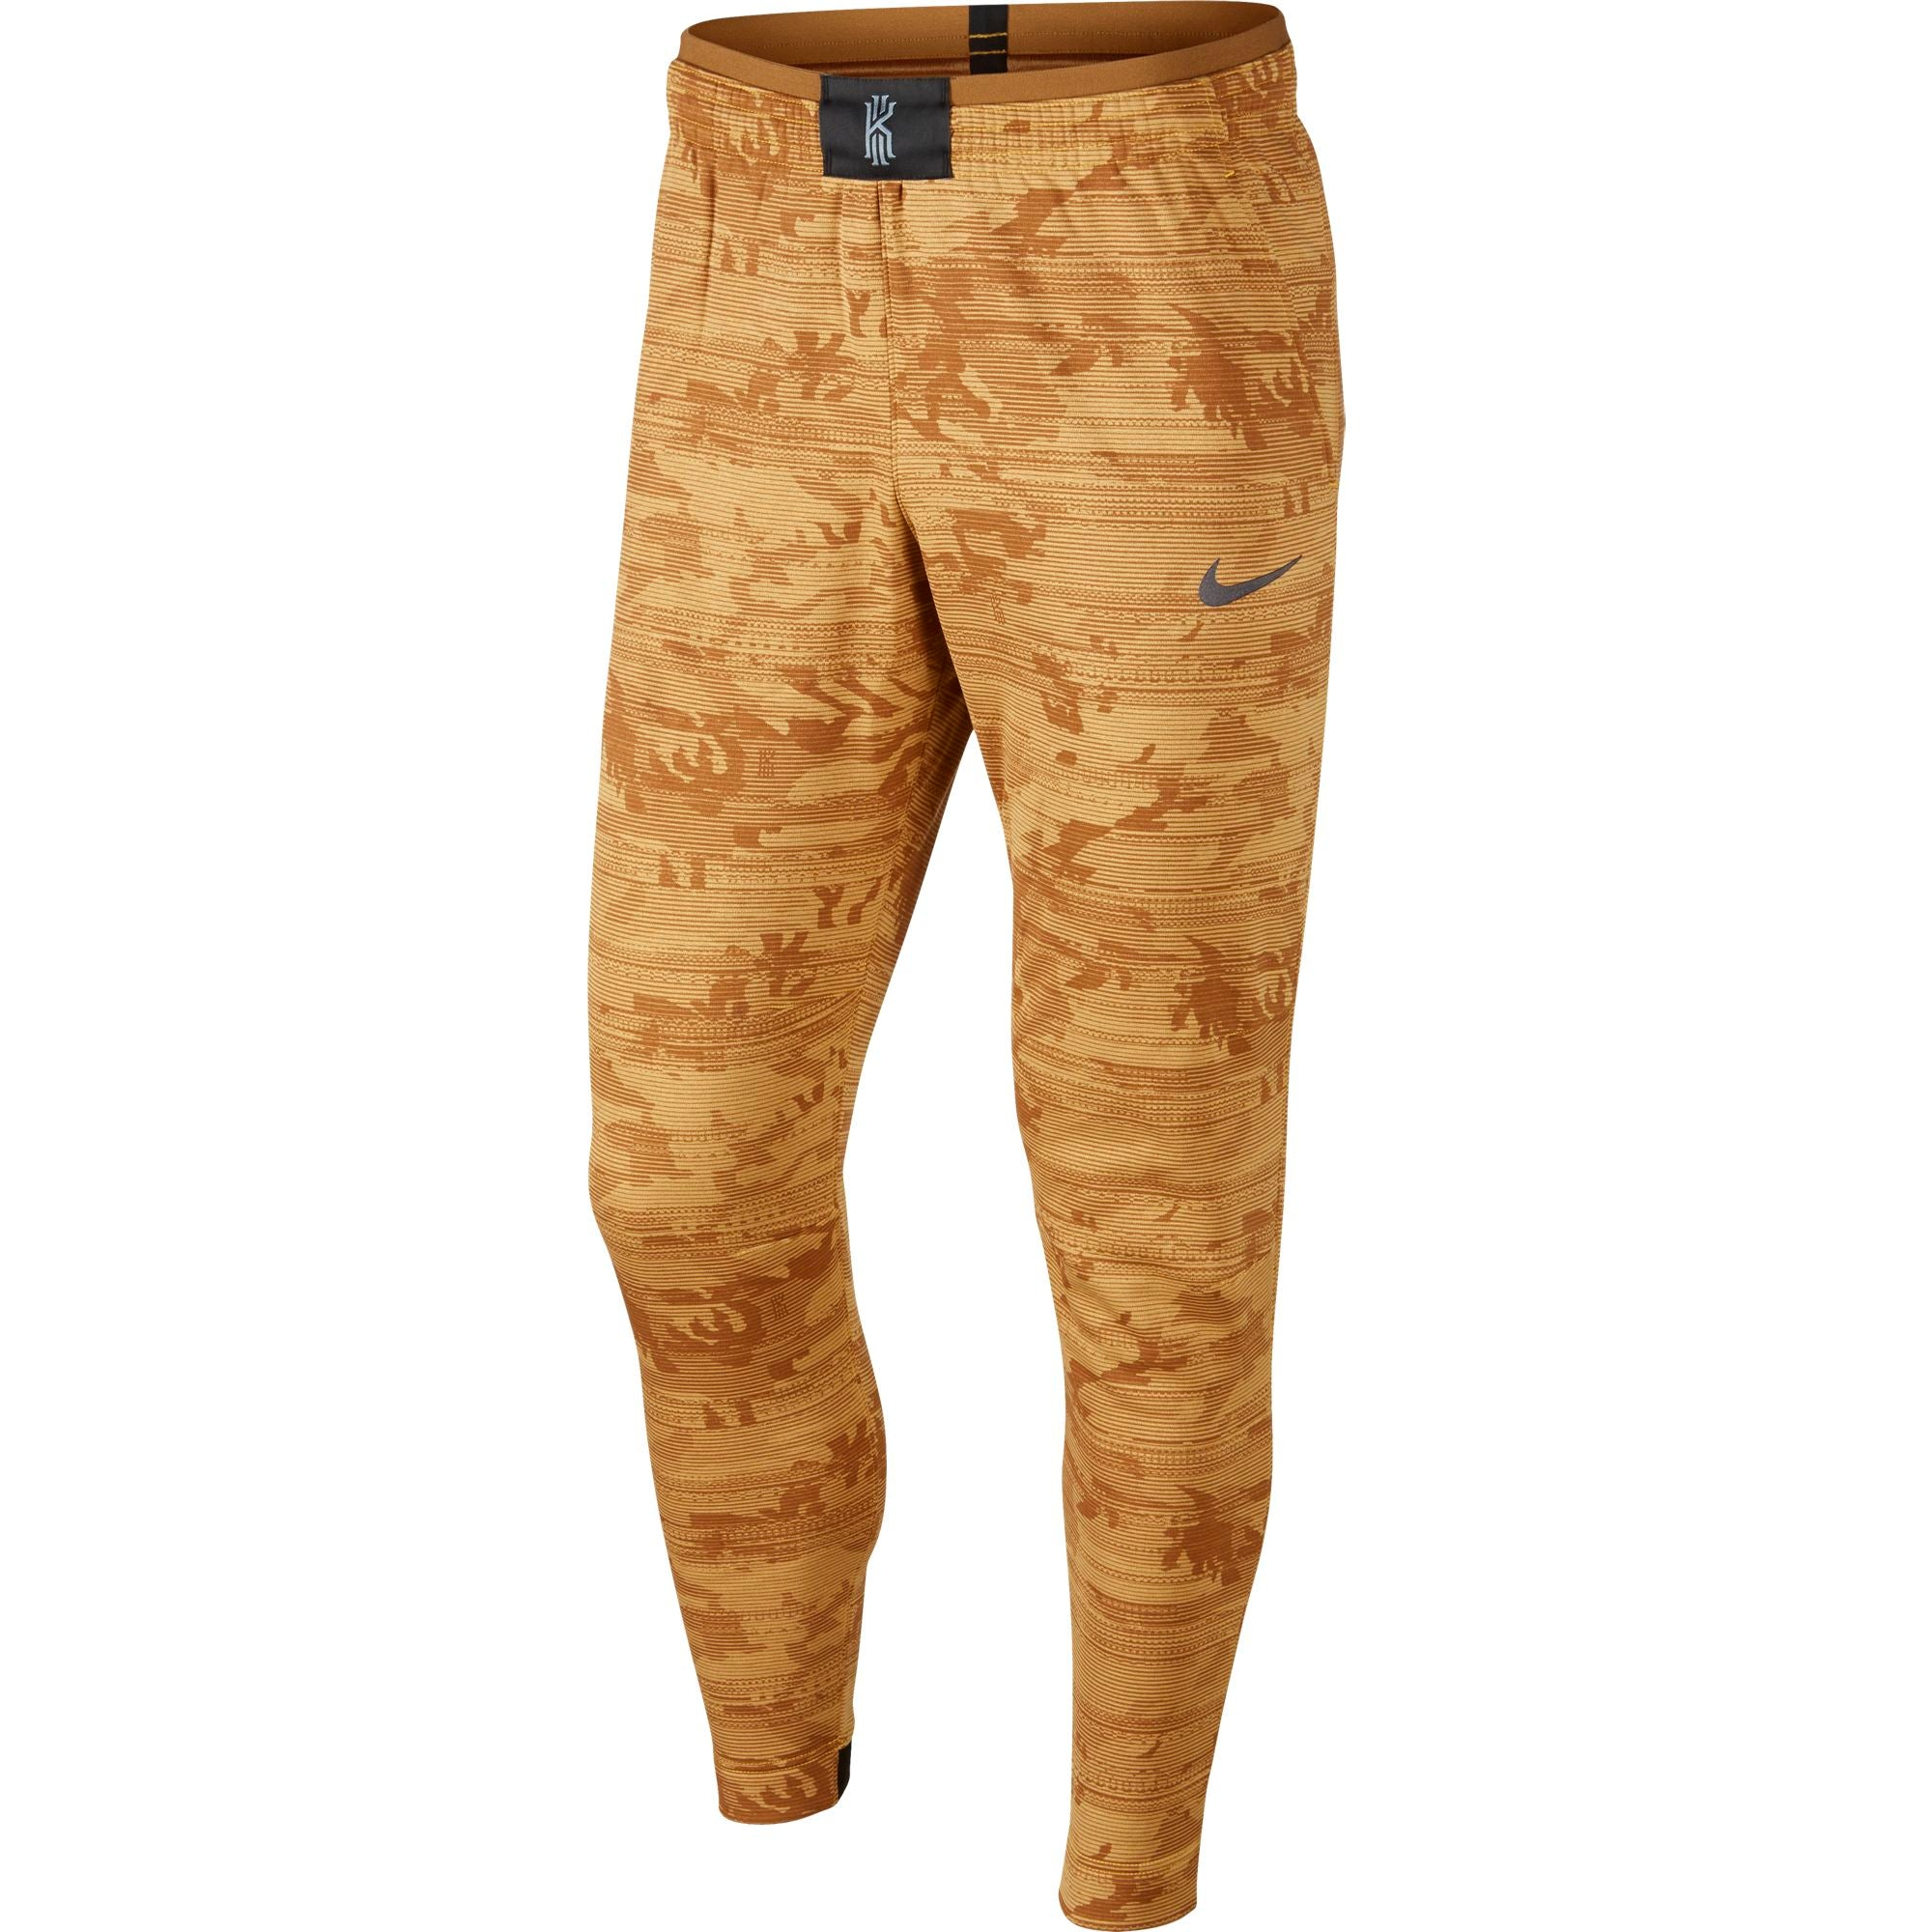 Nike Kyrie Dry Basketball Pants - NK-890655-722